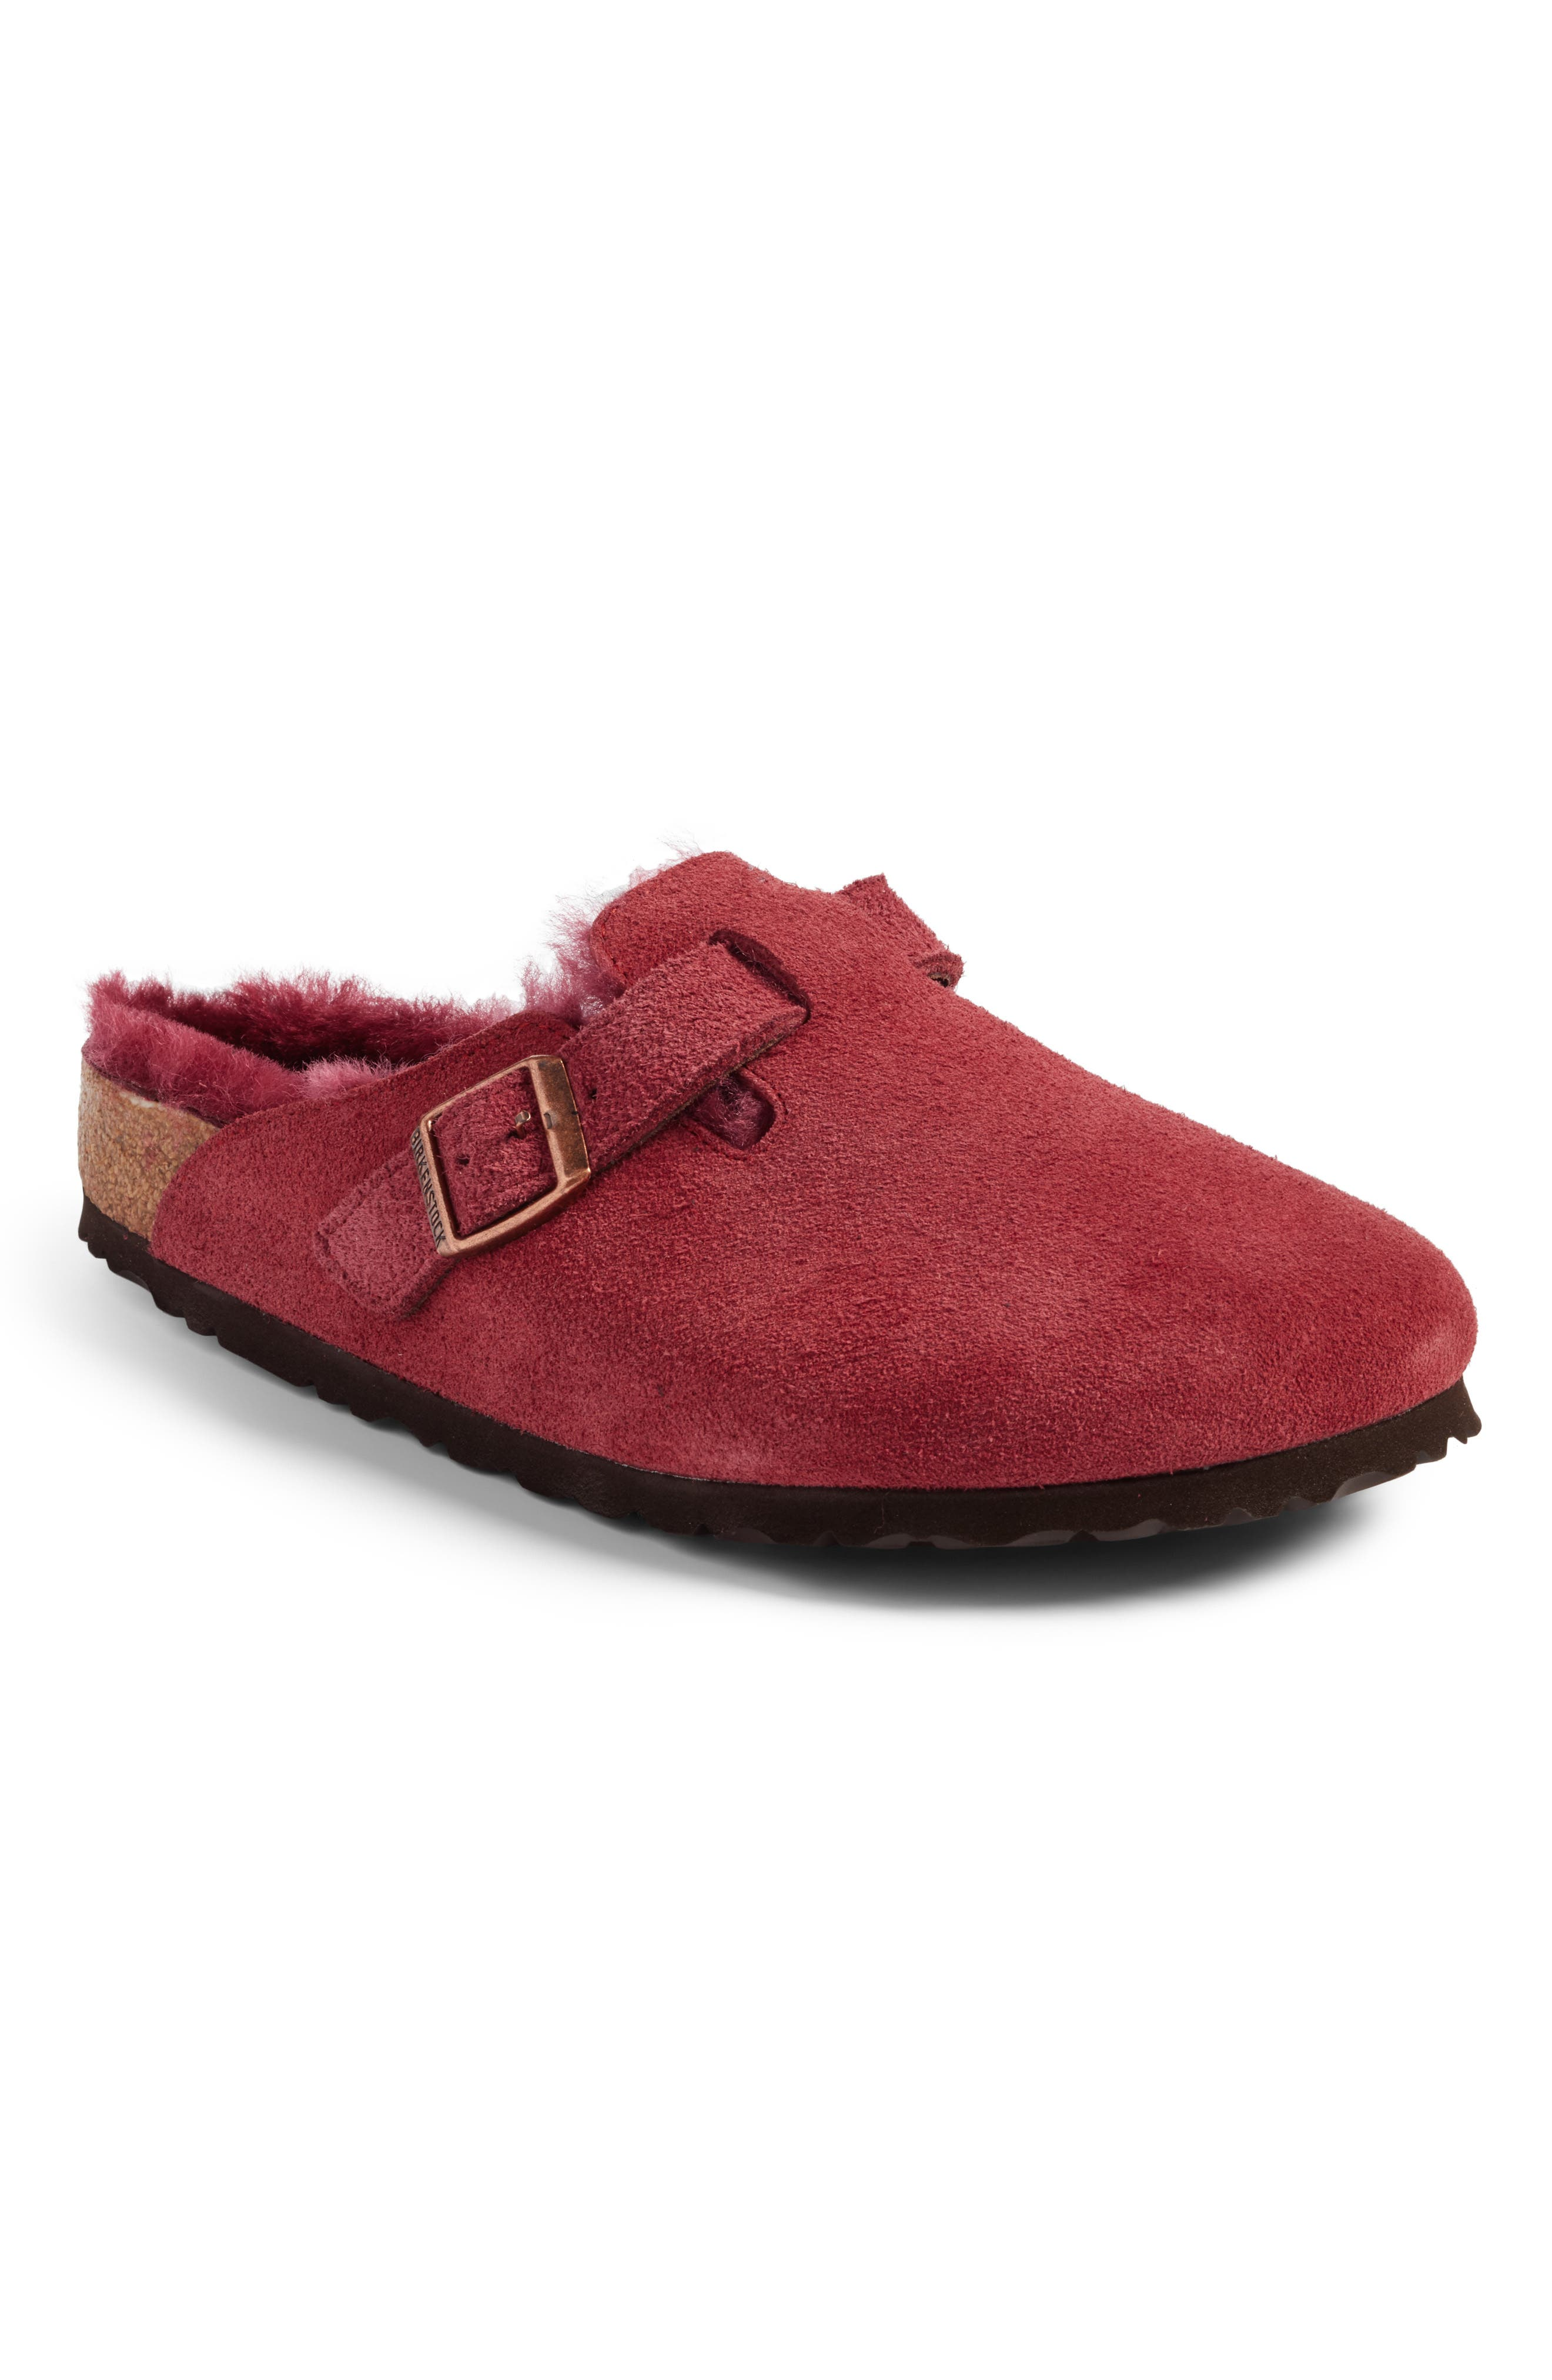 Boston Genuine Shearling Lined Clog,                         Main,                         color, 930